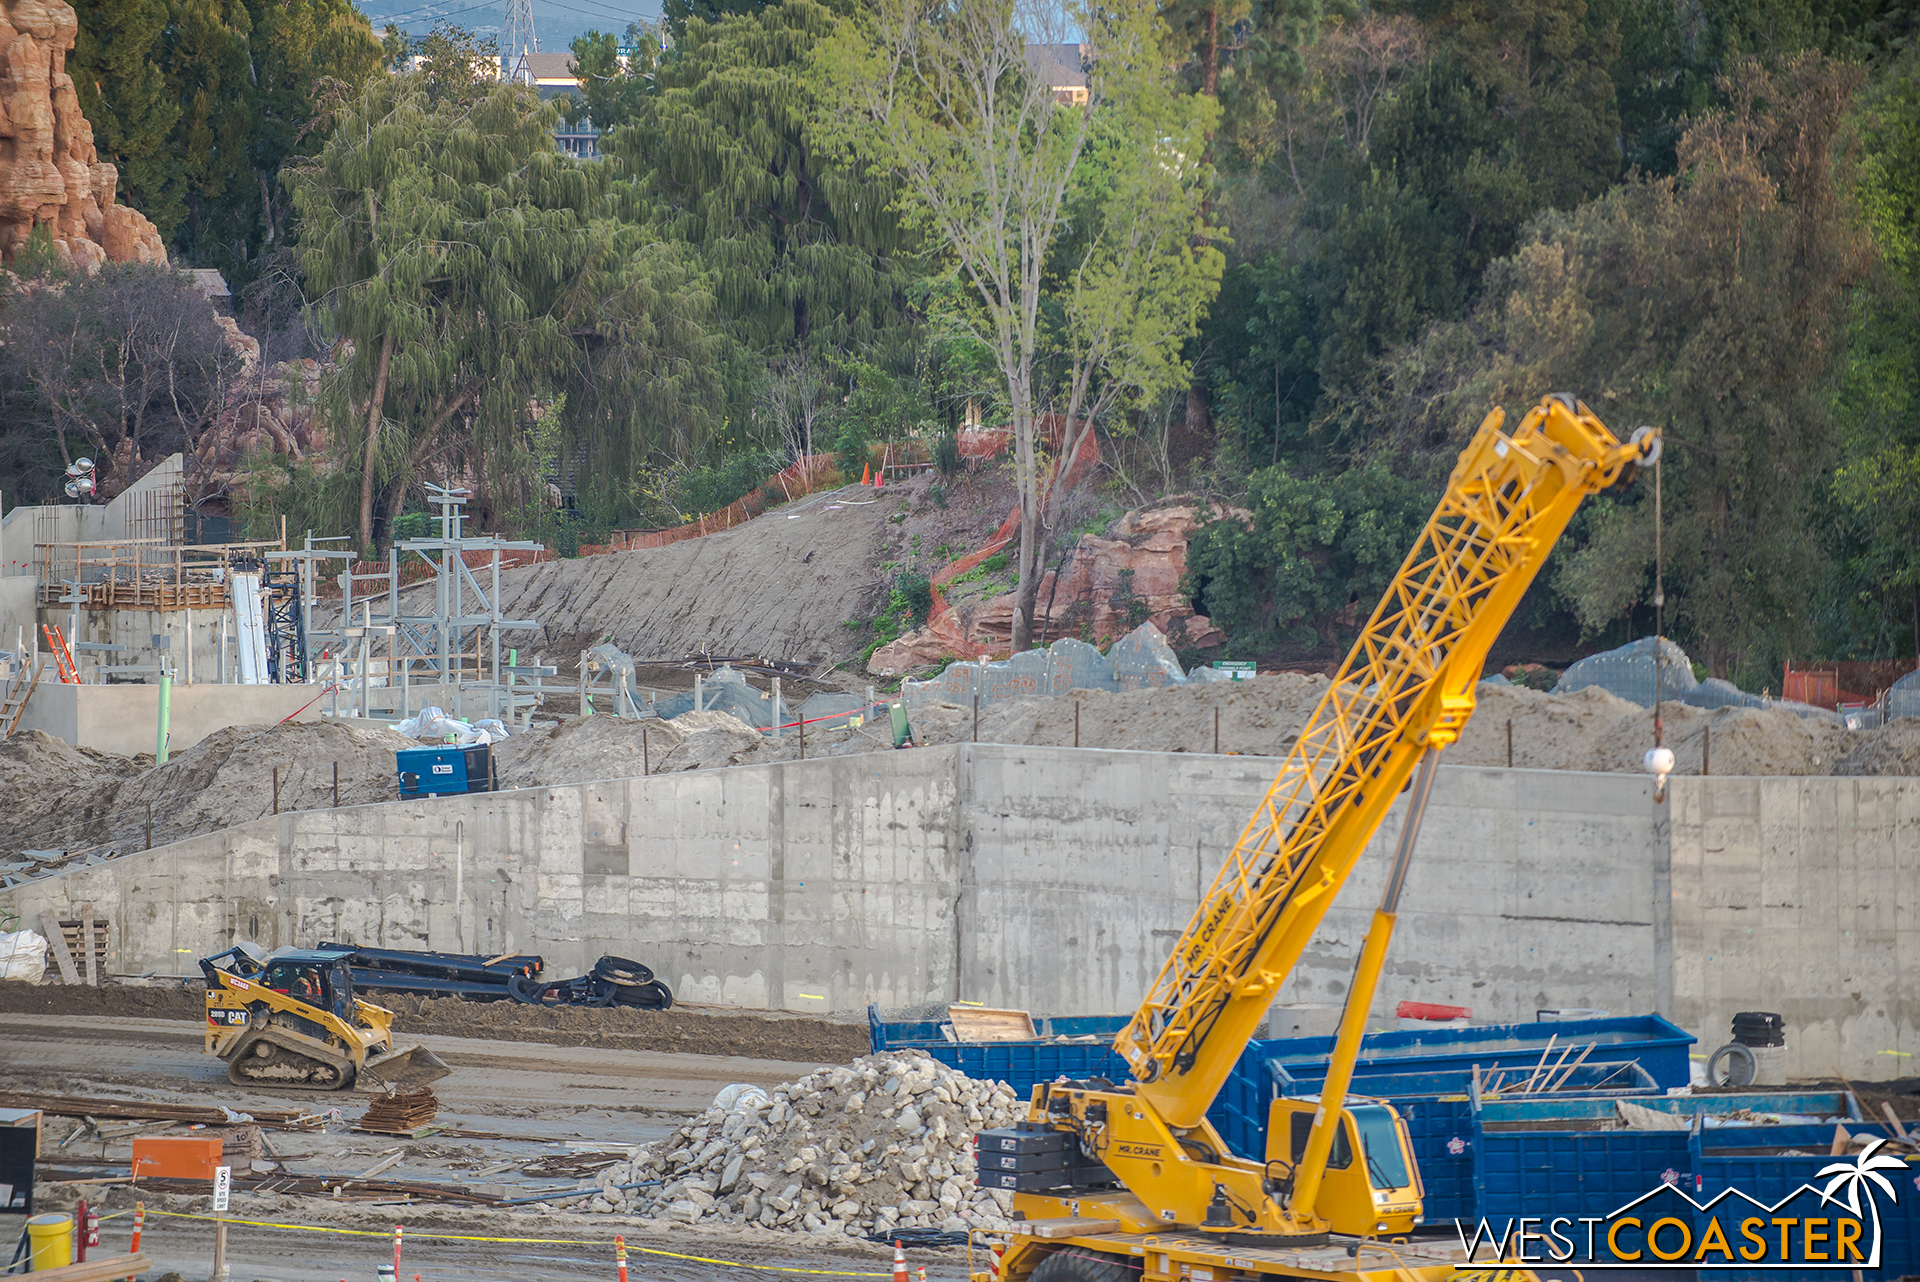 Over here, we have the backside of the rockwork that will front the reconfigured Rivers of America.